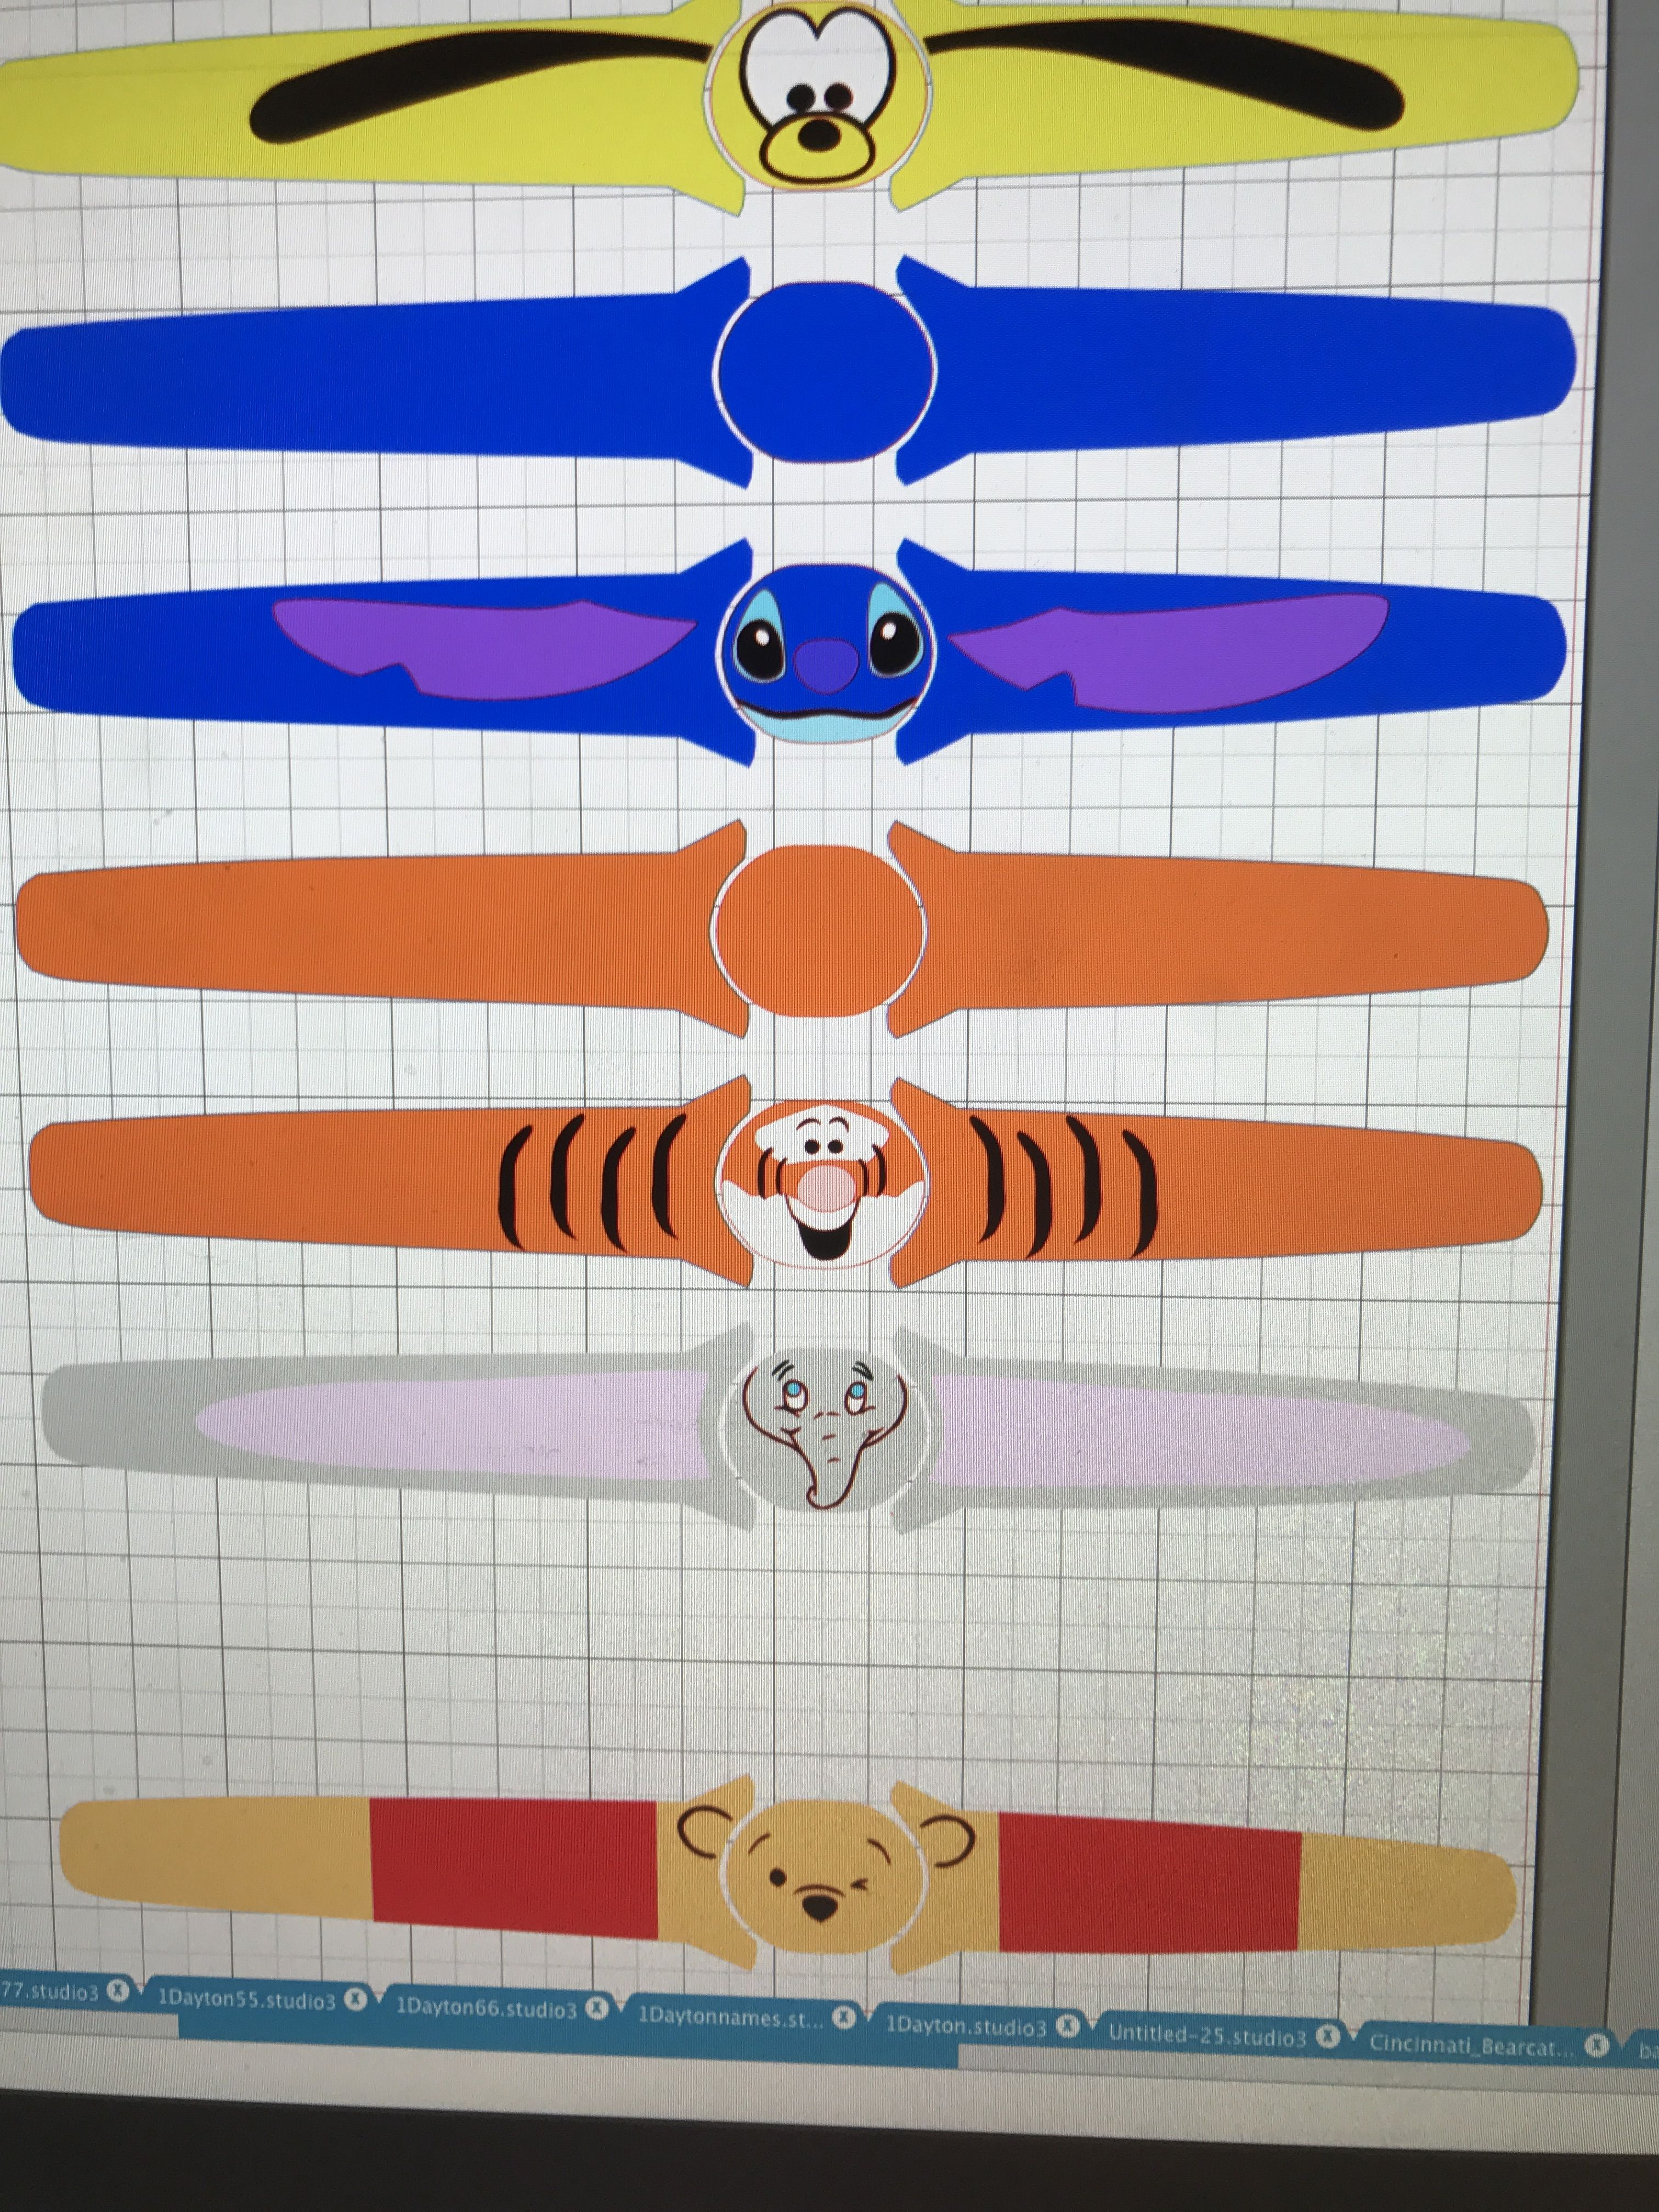 Magic band 2 0 vinyl template from www ourcraftspace com